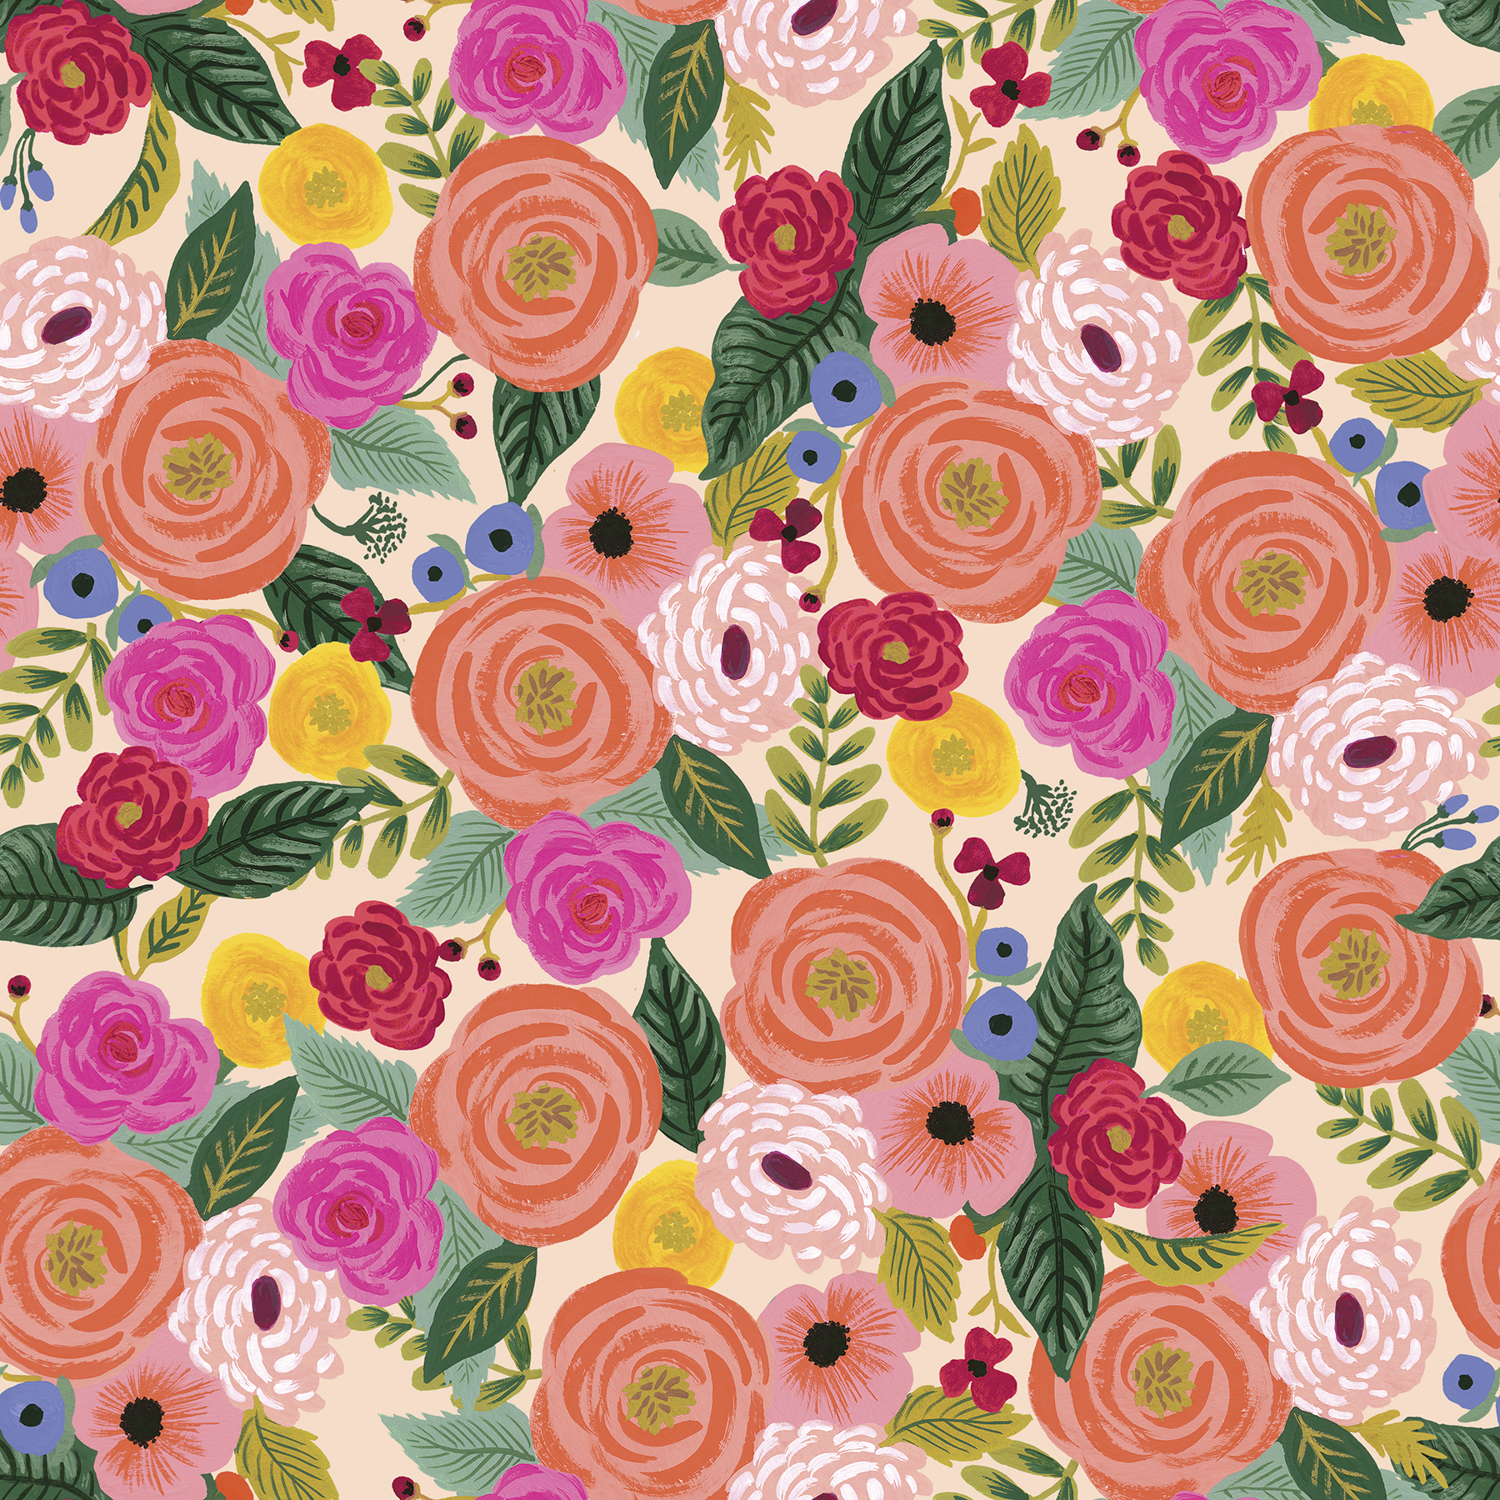 Juliet Rose in Cream (Rayon Fabric) by Rifle Paper Co from the English Garden collection for Cotton and Steel #AB806415